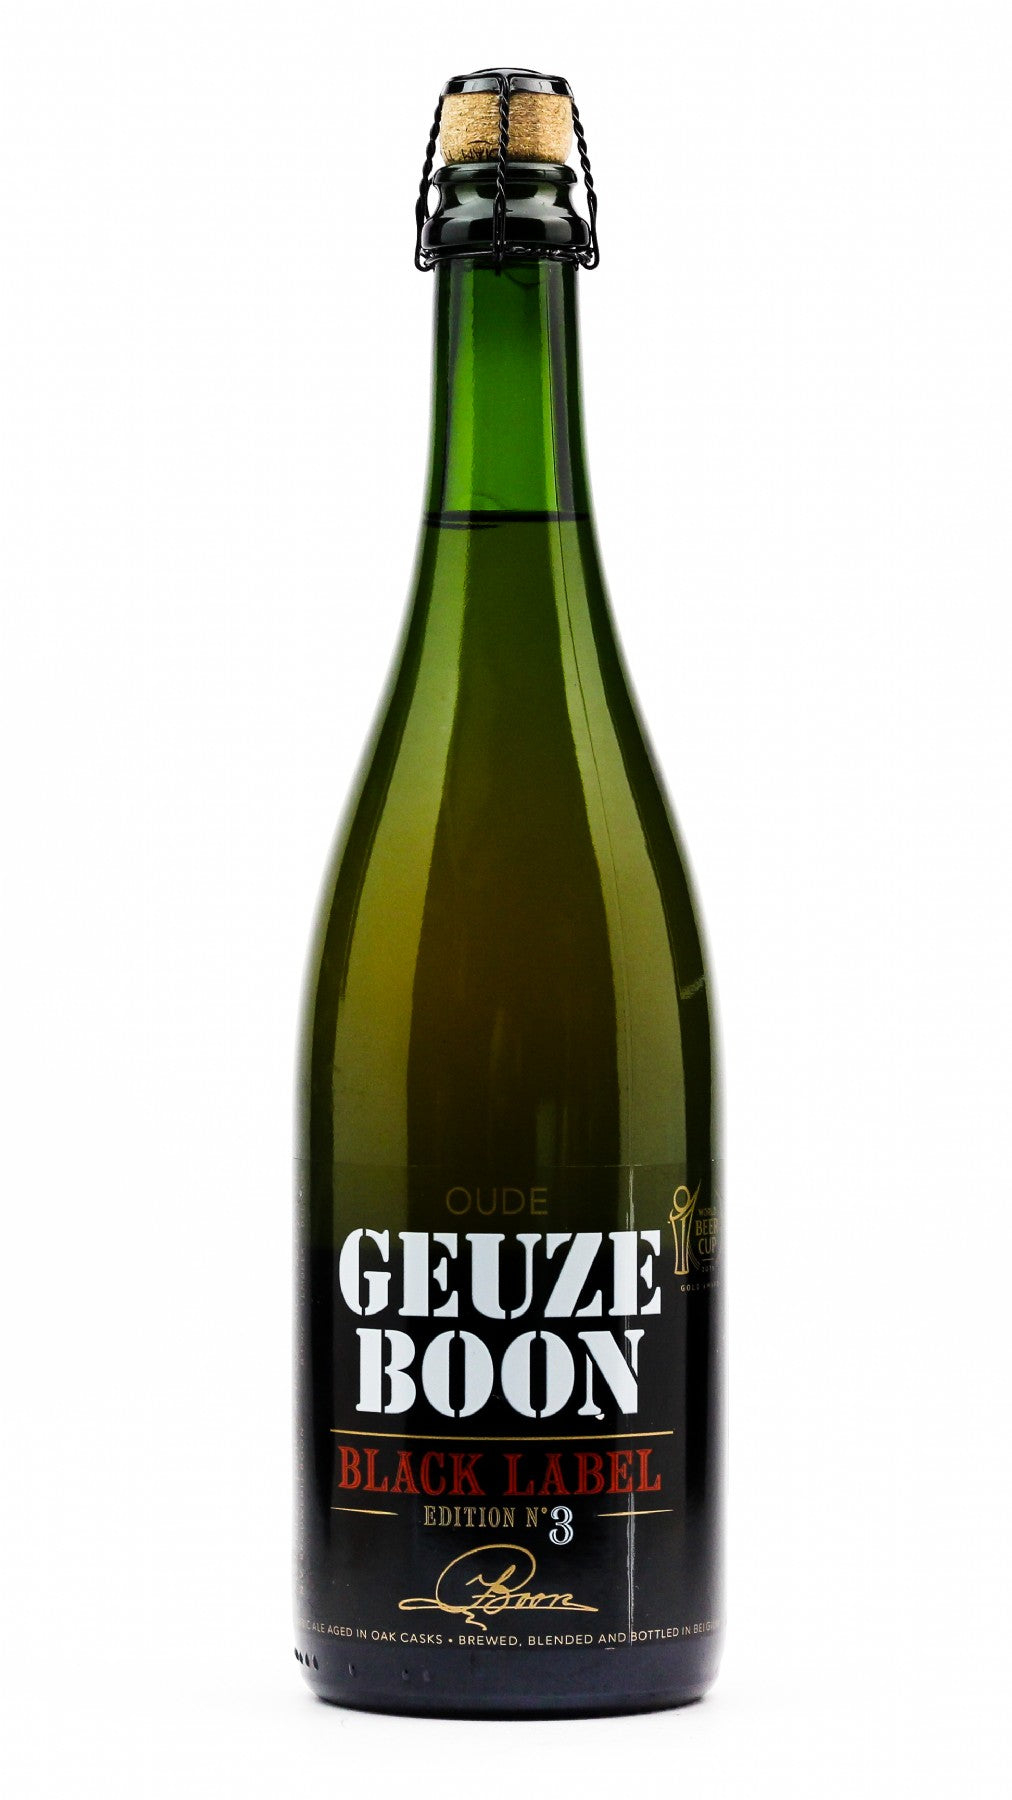 OUDE GEUZE BOON BLACK LABEL 750ML